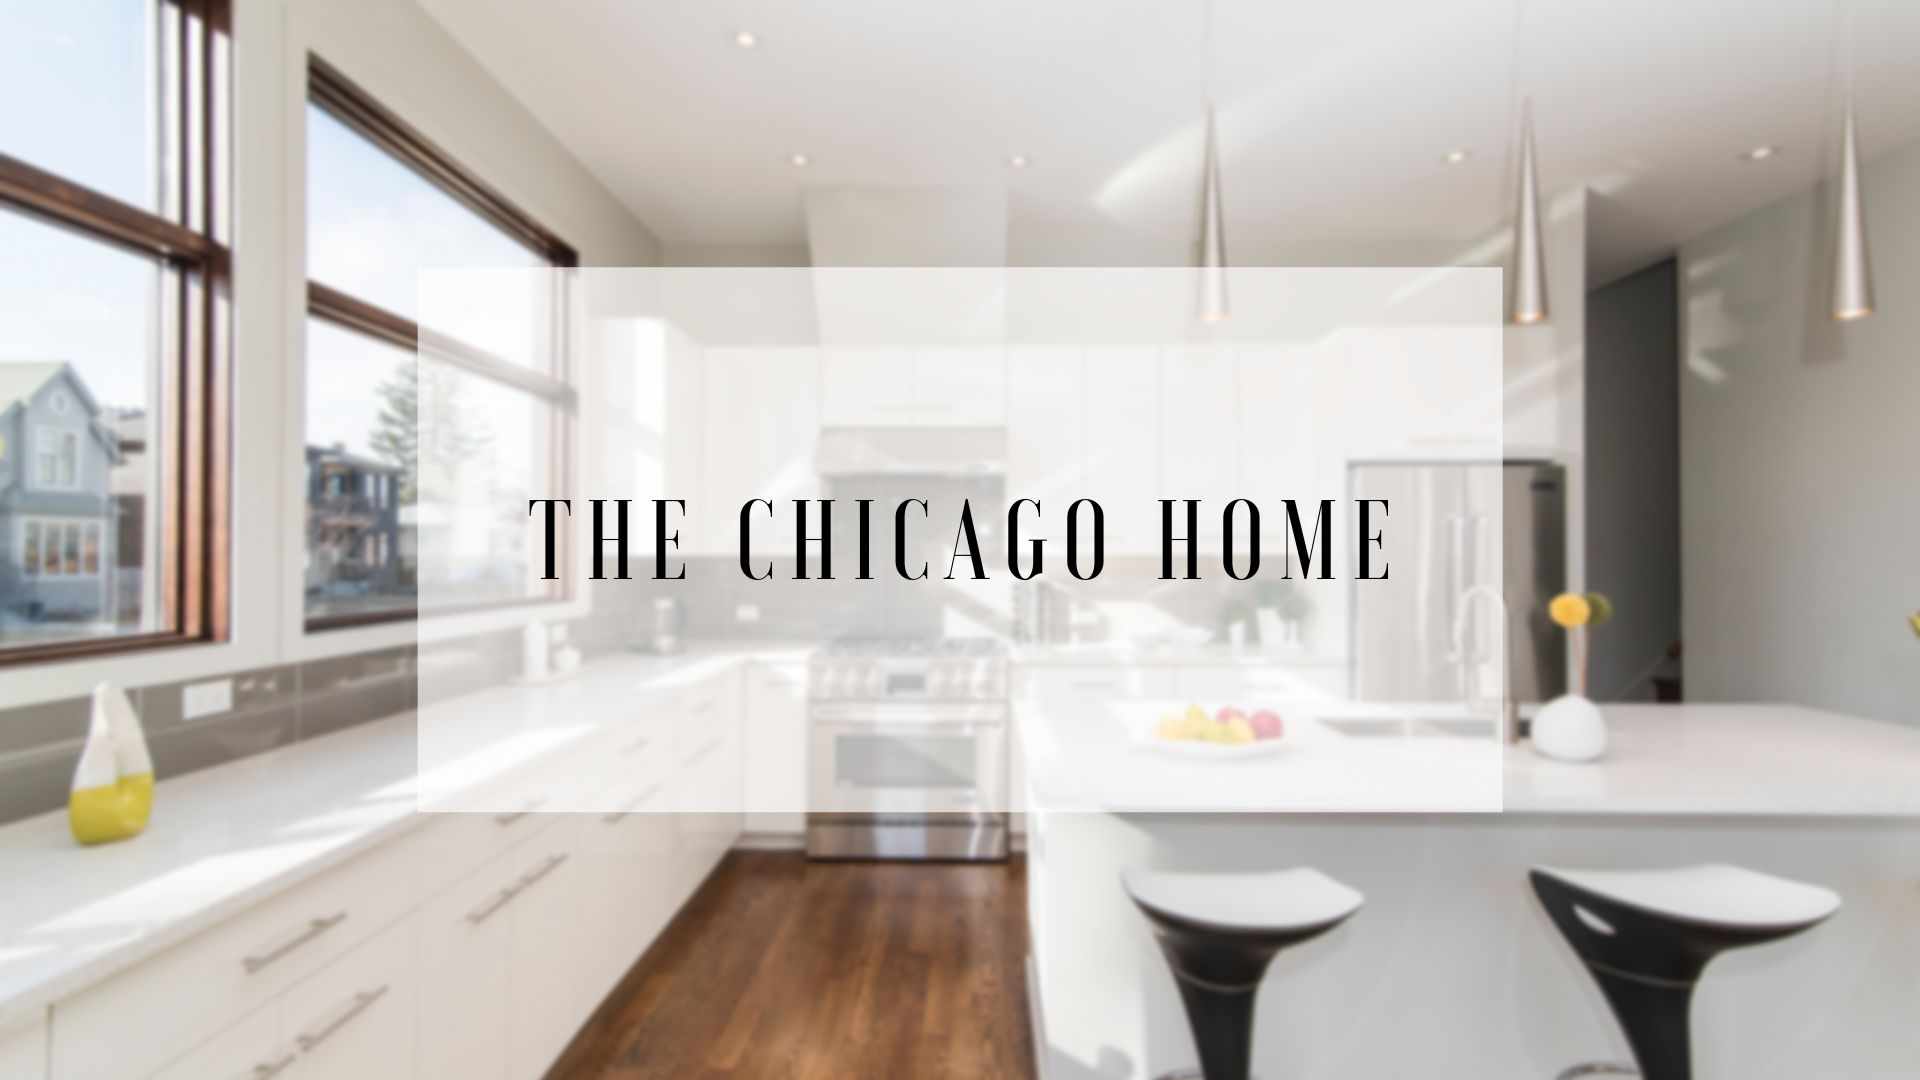 The Chicago Home